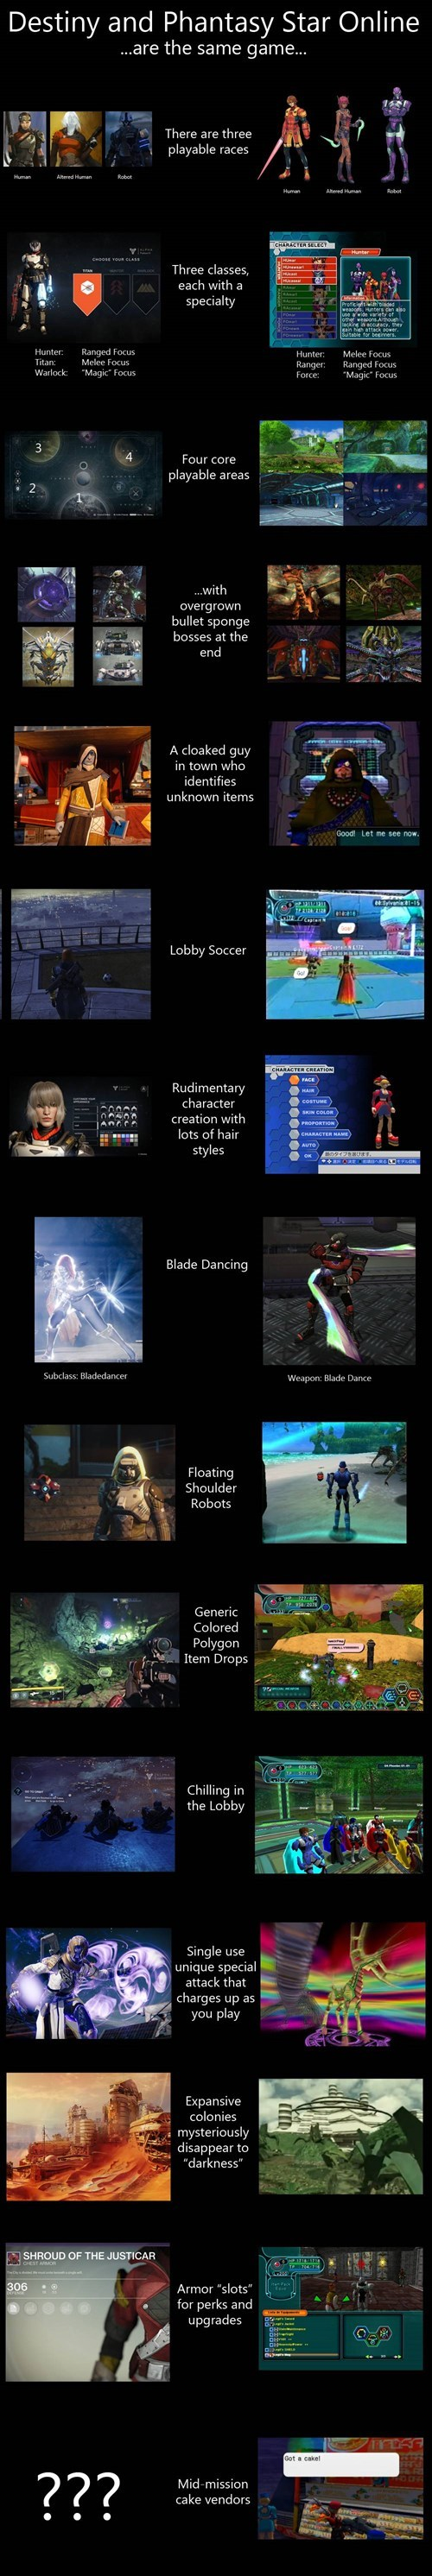 destiny gaming similarities phantasy star online - 8345465344